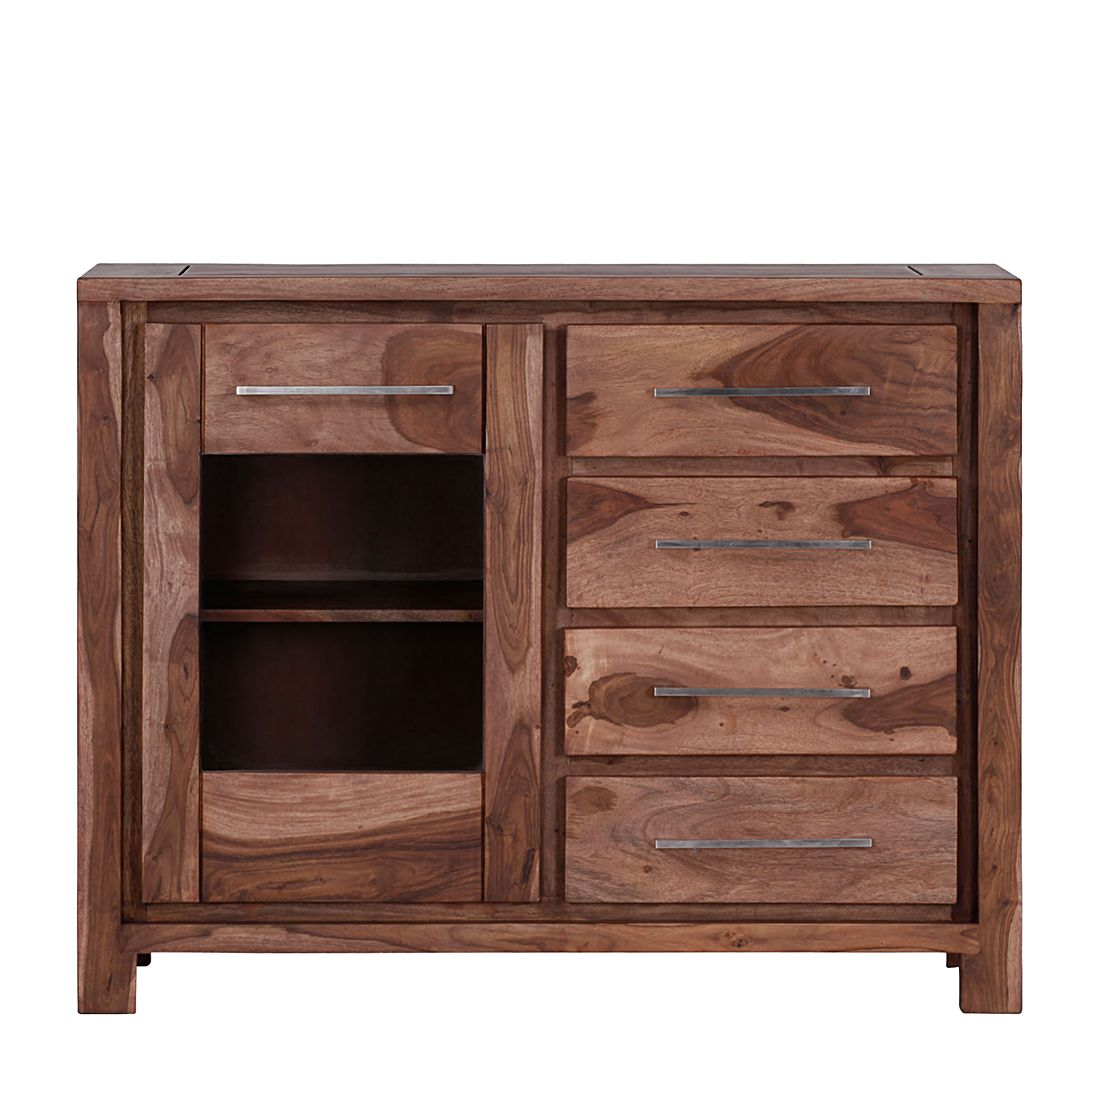 sheesham schrank top sale tv schrank massiv sheesham palisander cm wiam auf lager with sheesham. Black Bedroom Furniture Sets. Home Design Ideas